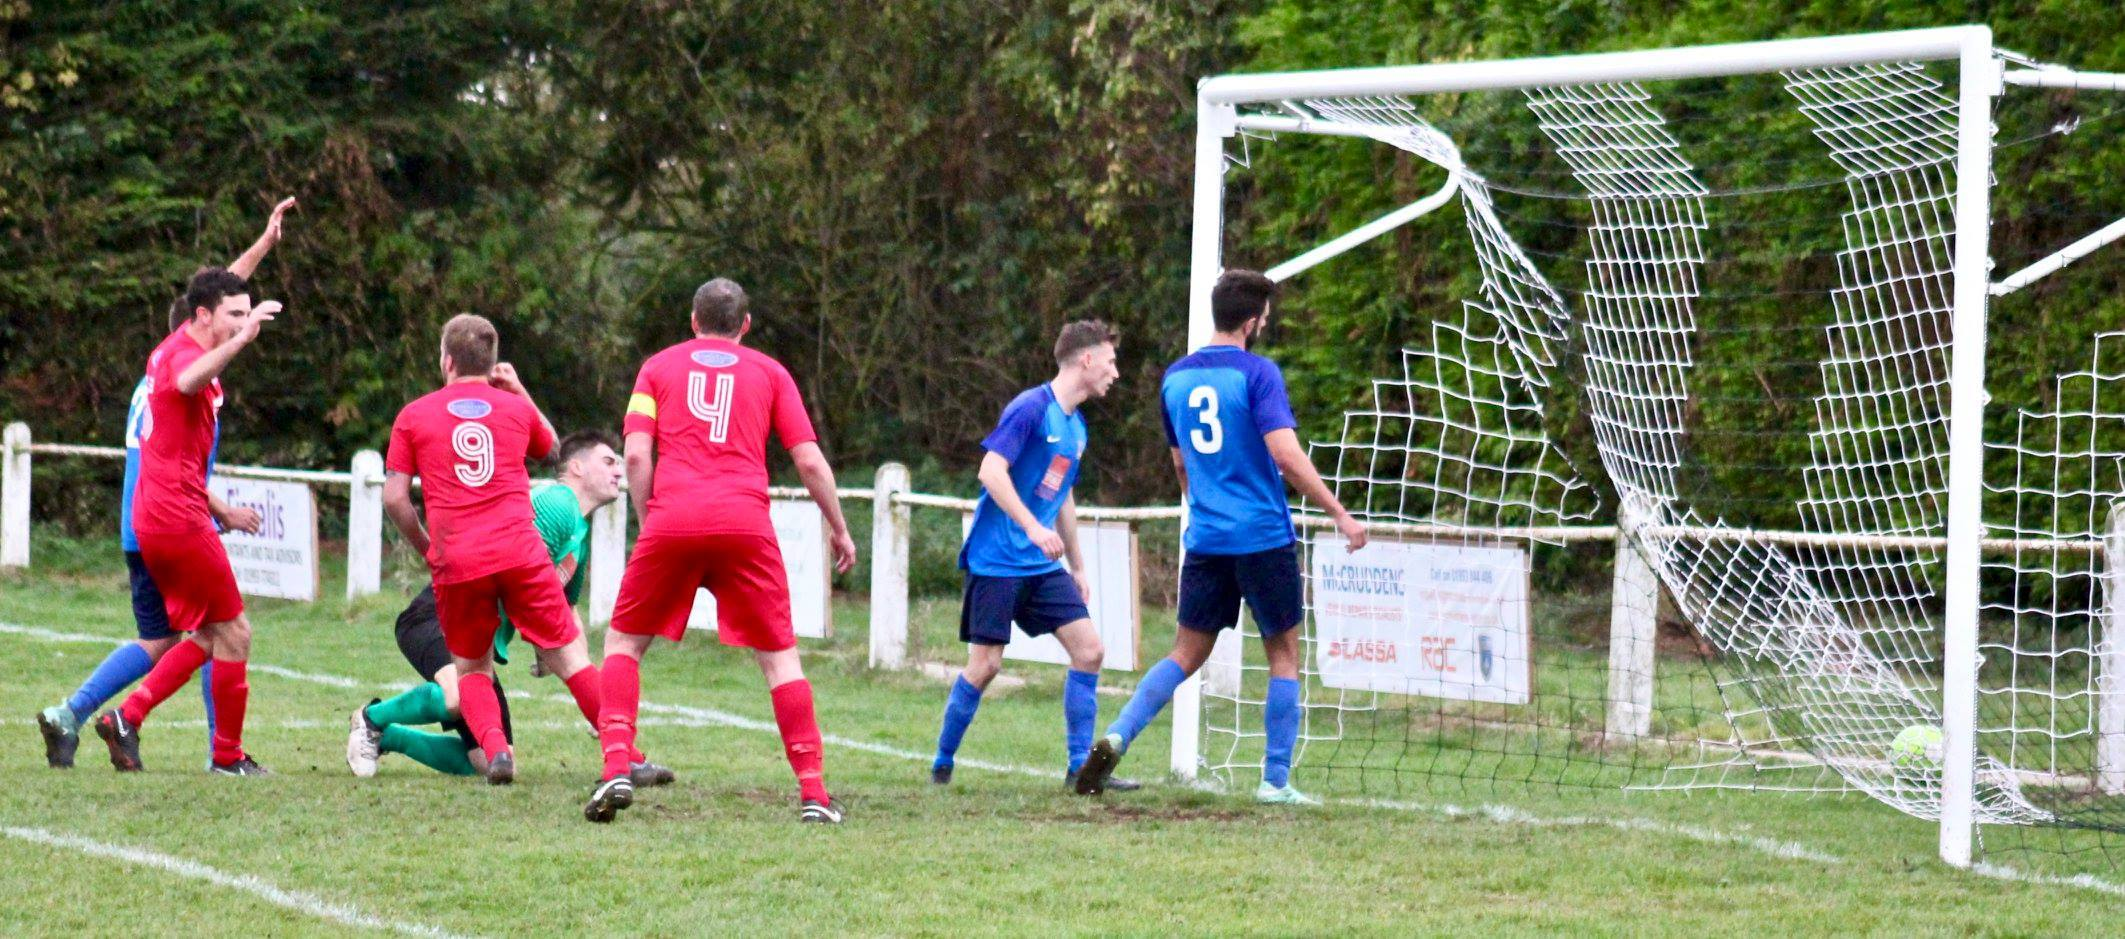 CONSOLATION: Jozef Fullerton (9) celebrates his goal for Clanfield after scoring with a backheel from a corner, but his side were beaten 3-1 by leaders Cheltenham Saracens Picture: Paul Gibbens